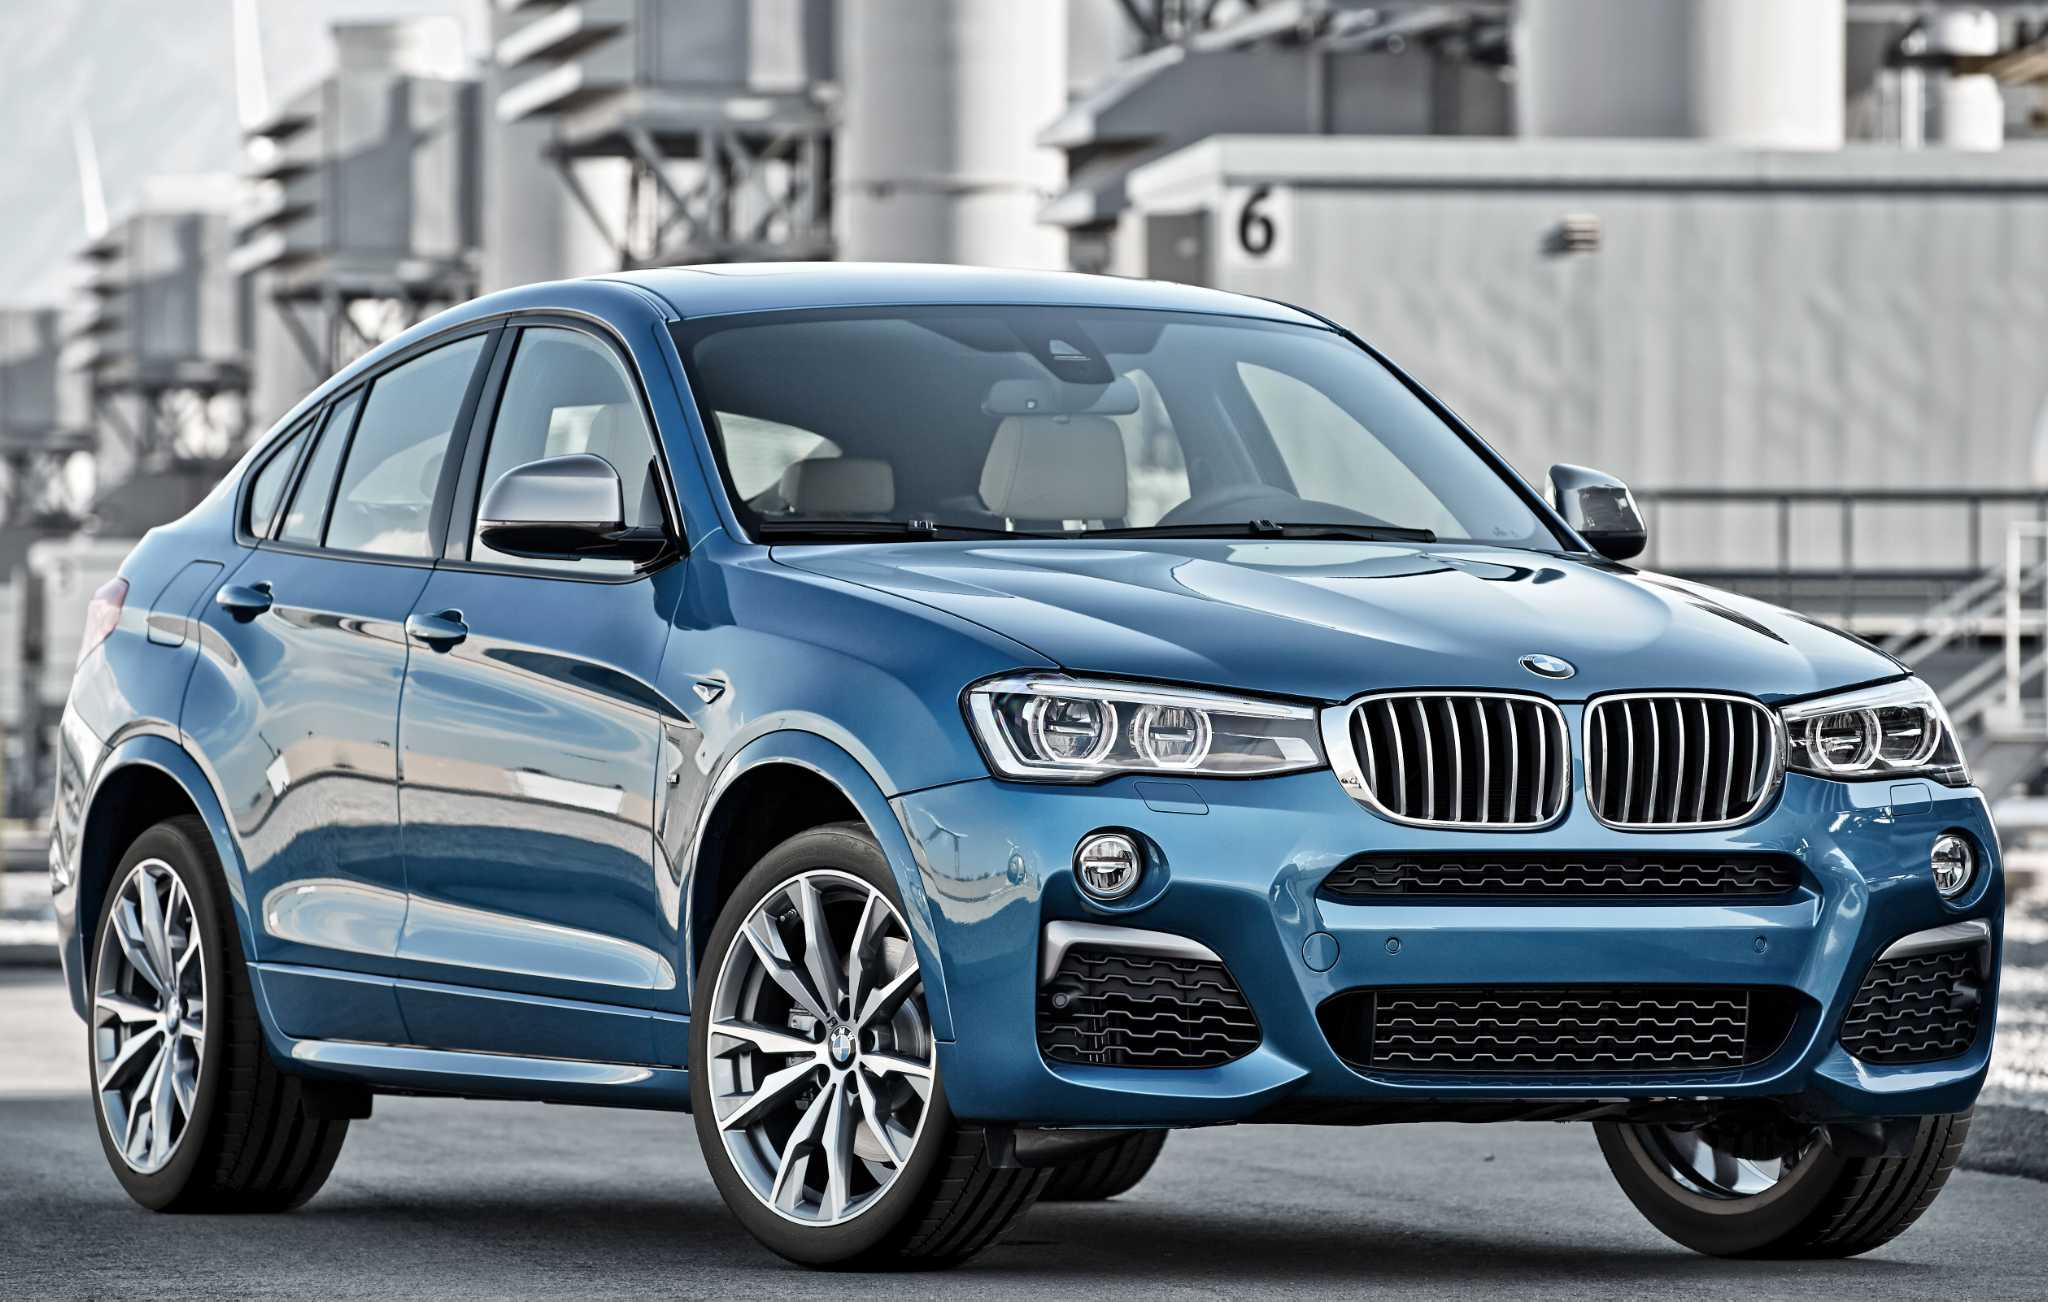 BMW's X4 Sports Activity Coupe comes in two models